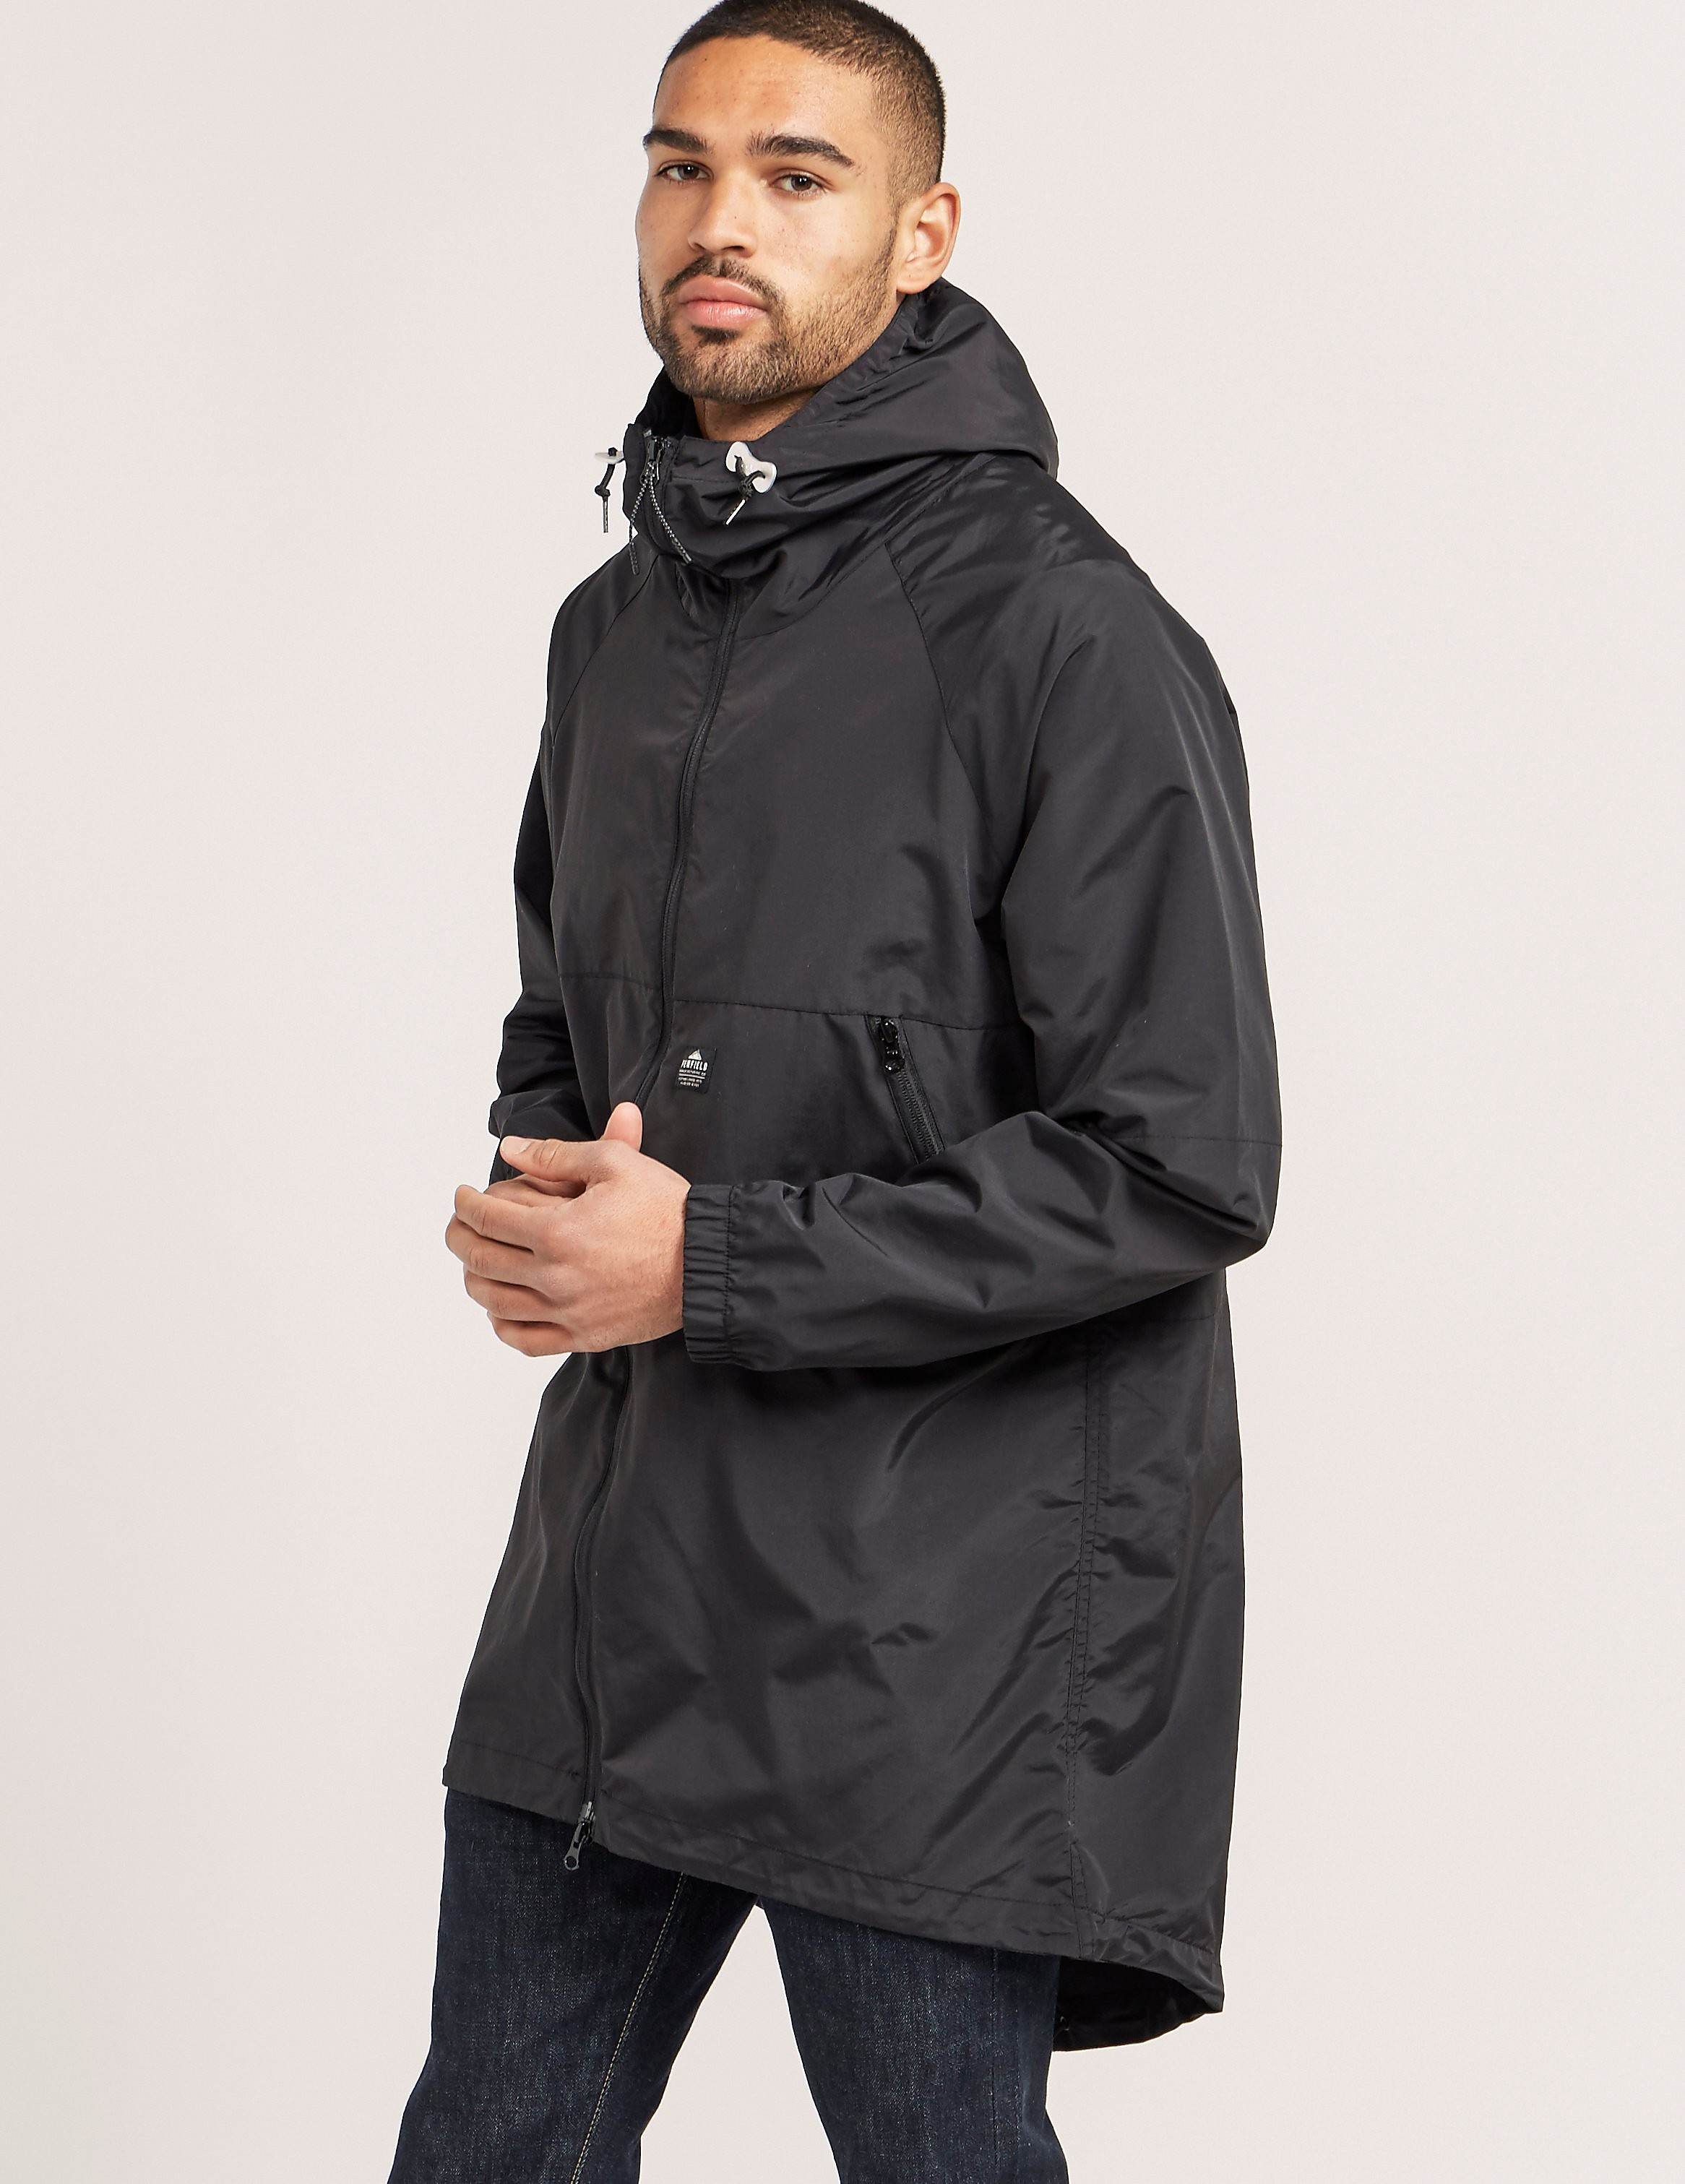 Penfield Colfax Jacket